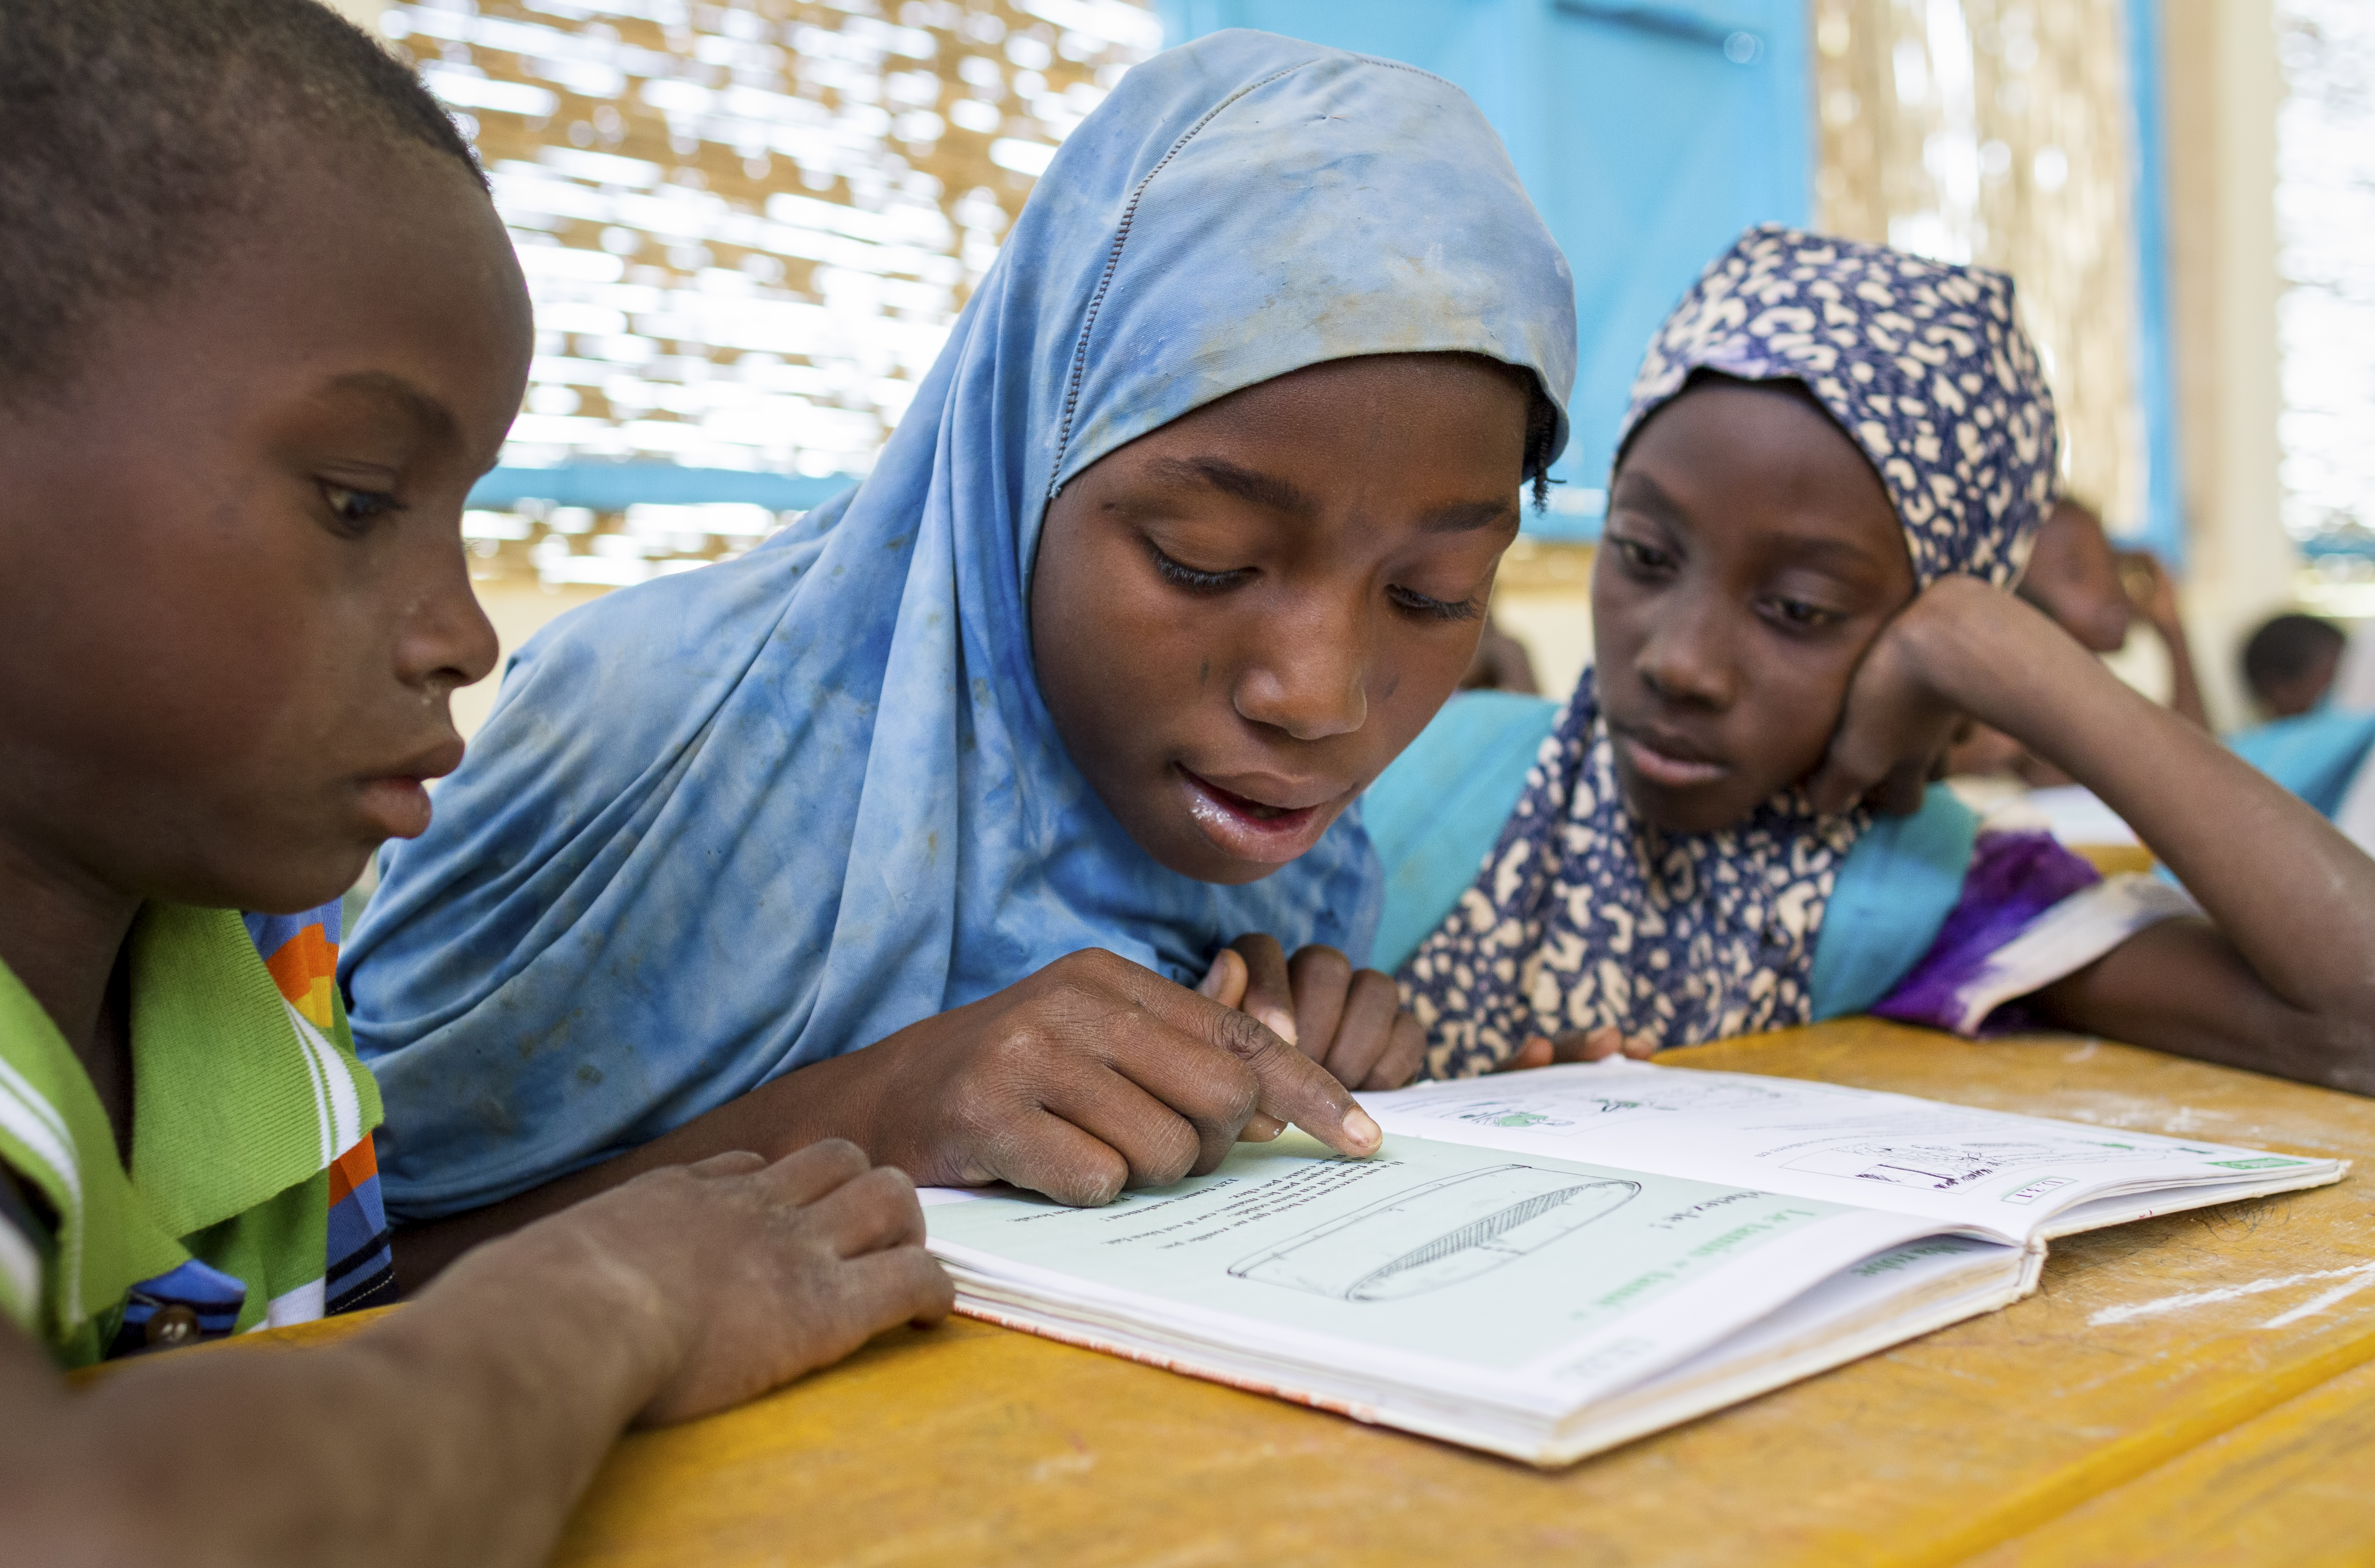 In 2012, when floods struck Niamey, Niger, Rashida (in blue) and her family were among the 8,000 people who were displaced. To ensure that there was no delay in the children returning to school, UNICEF and partners raised 12 emergency education tents at a nearby school.